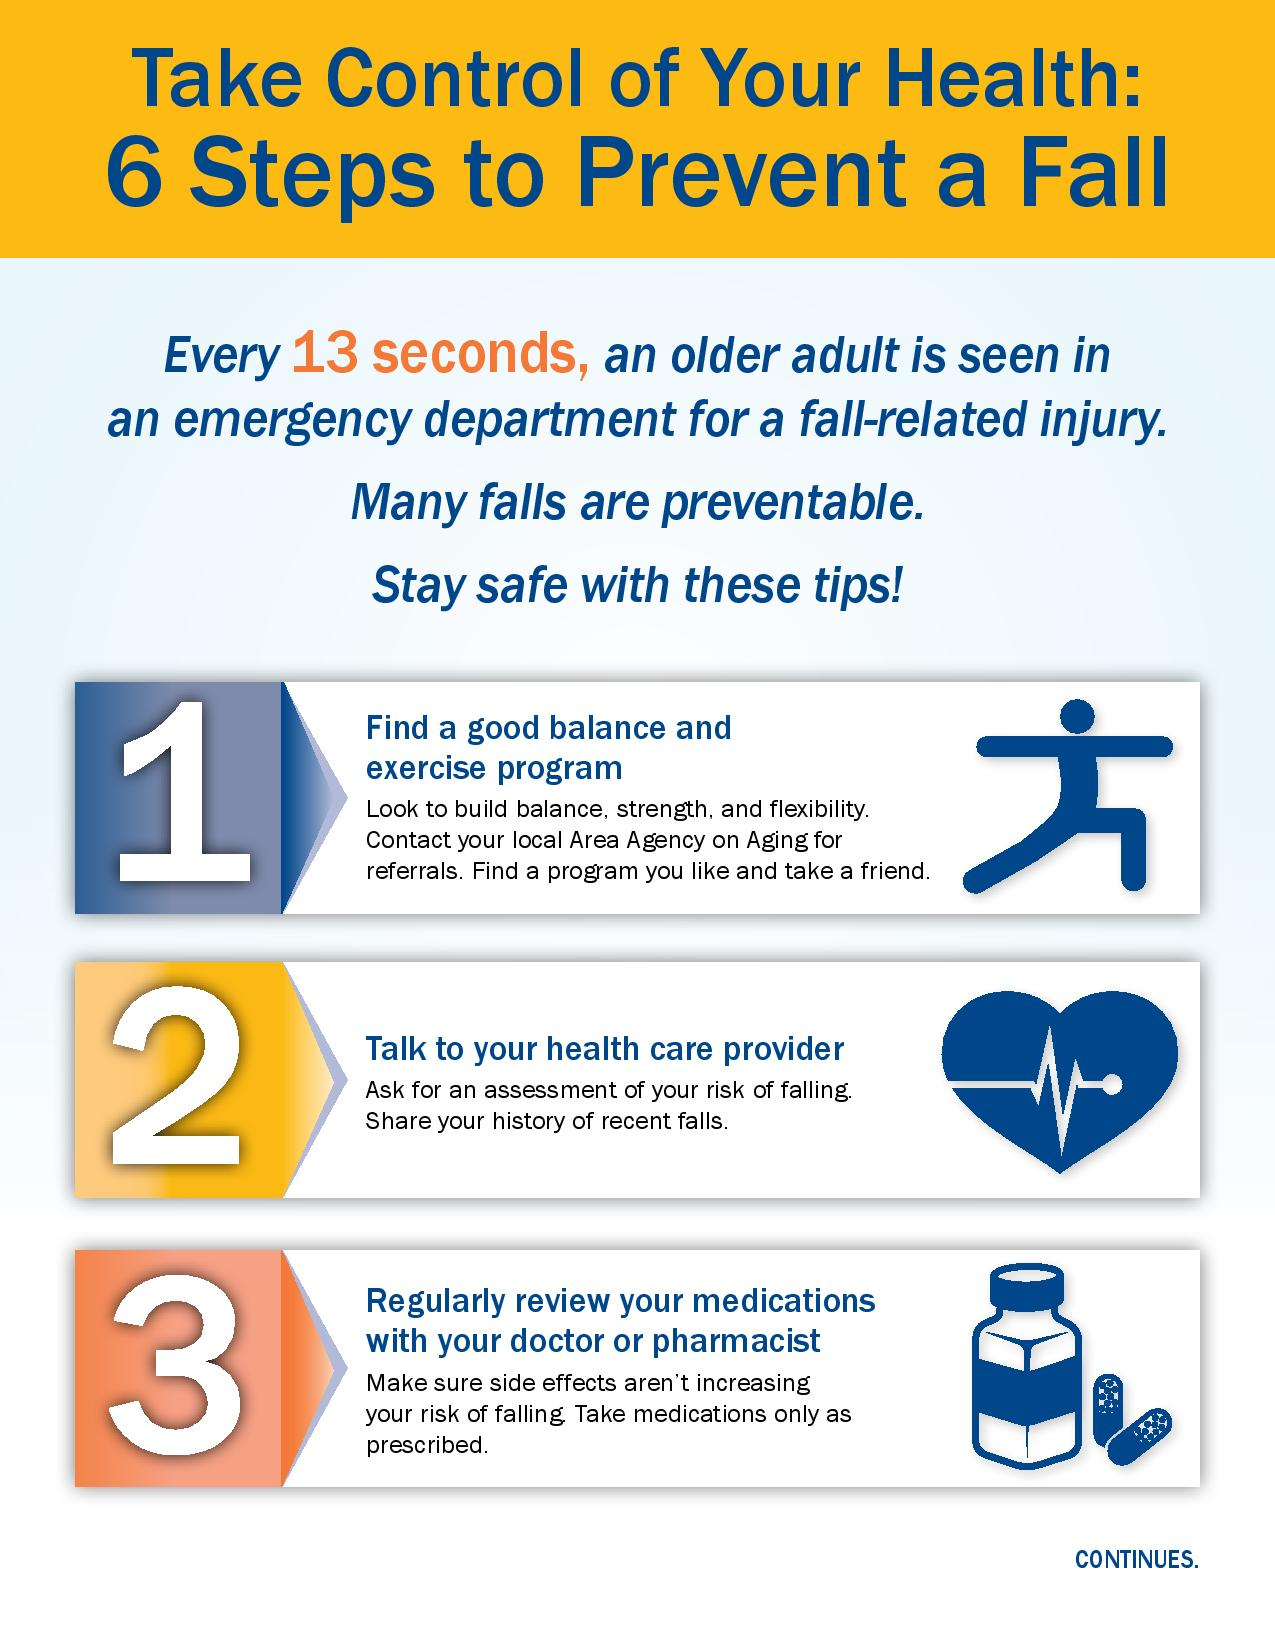 6 steps to prevent a fall infographic page 1